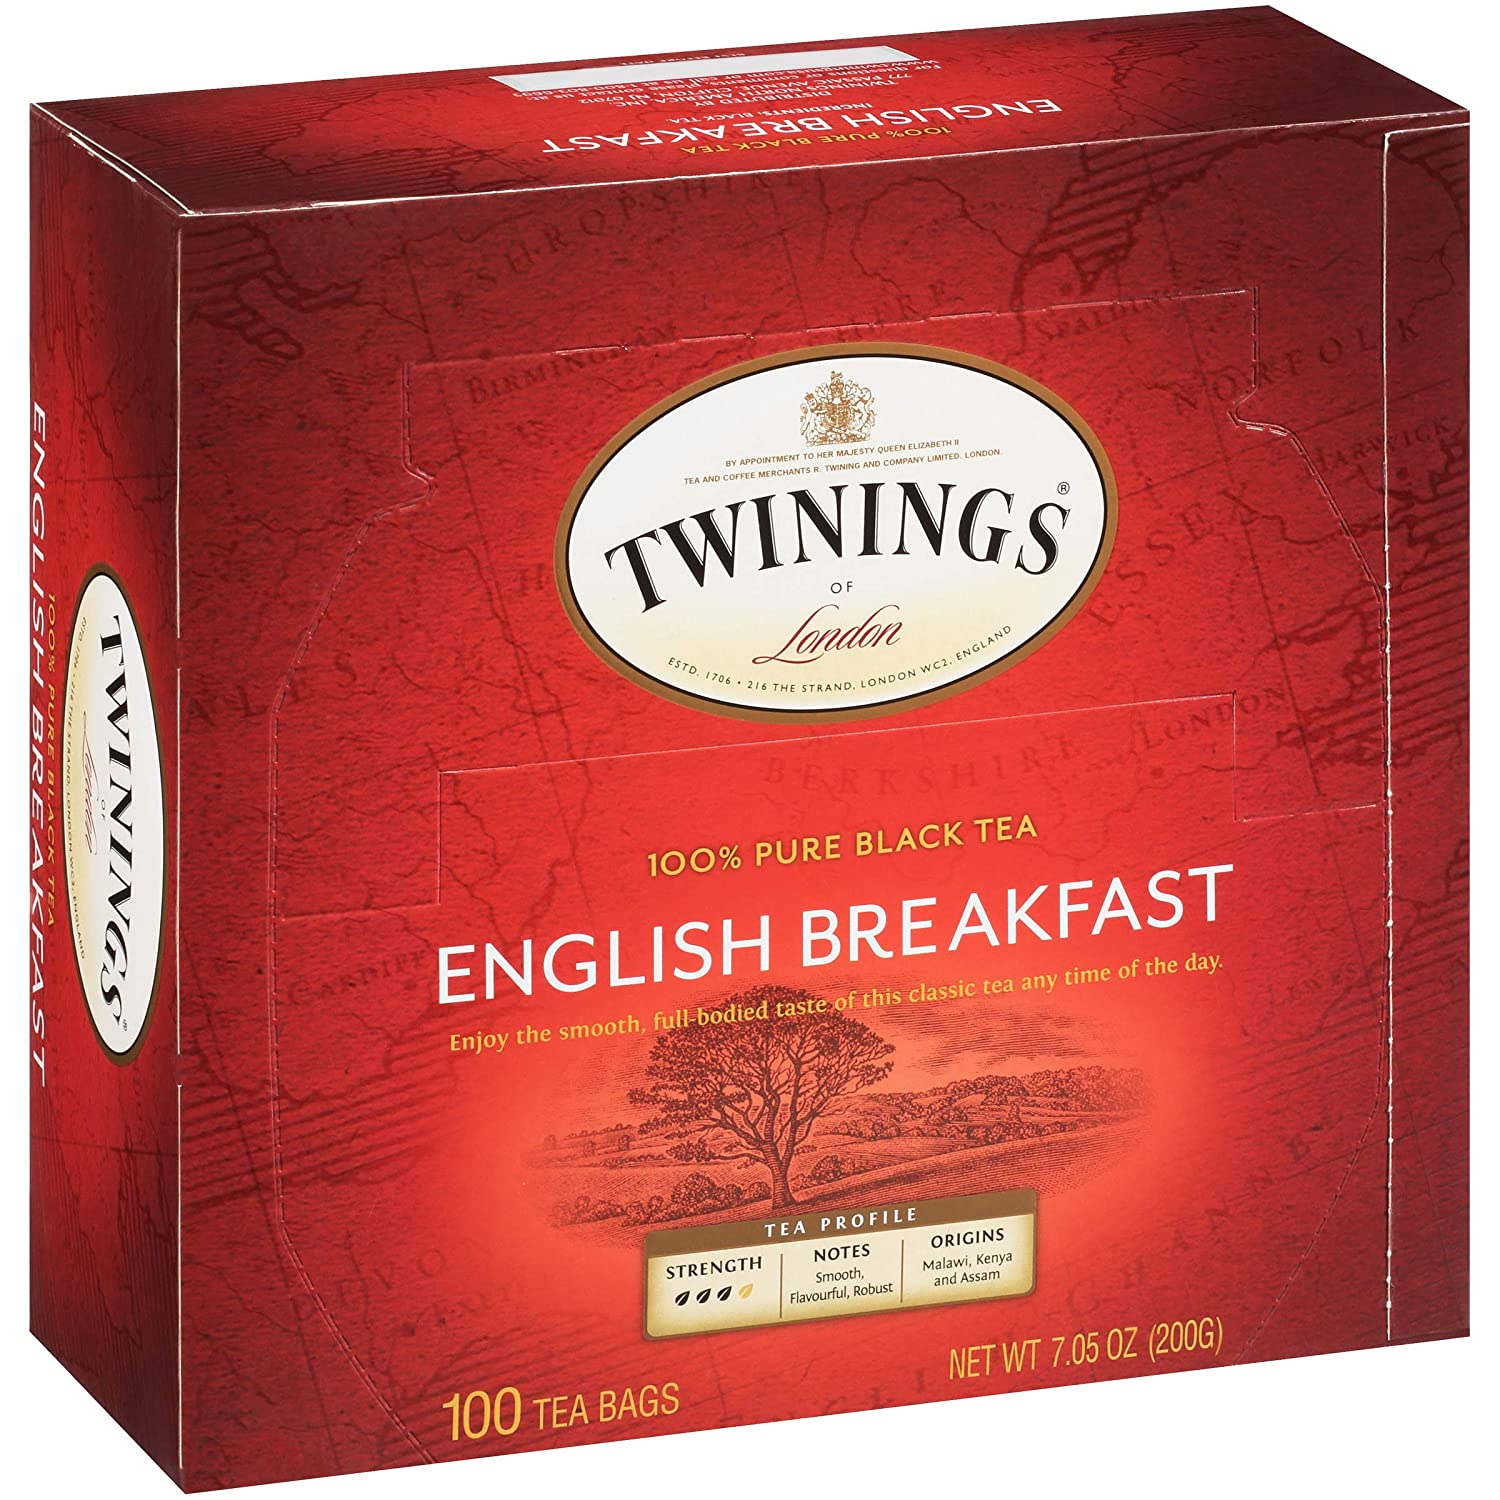 Twinings of London English Breakfast Black Tea Bags box, 100 count